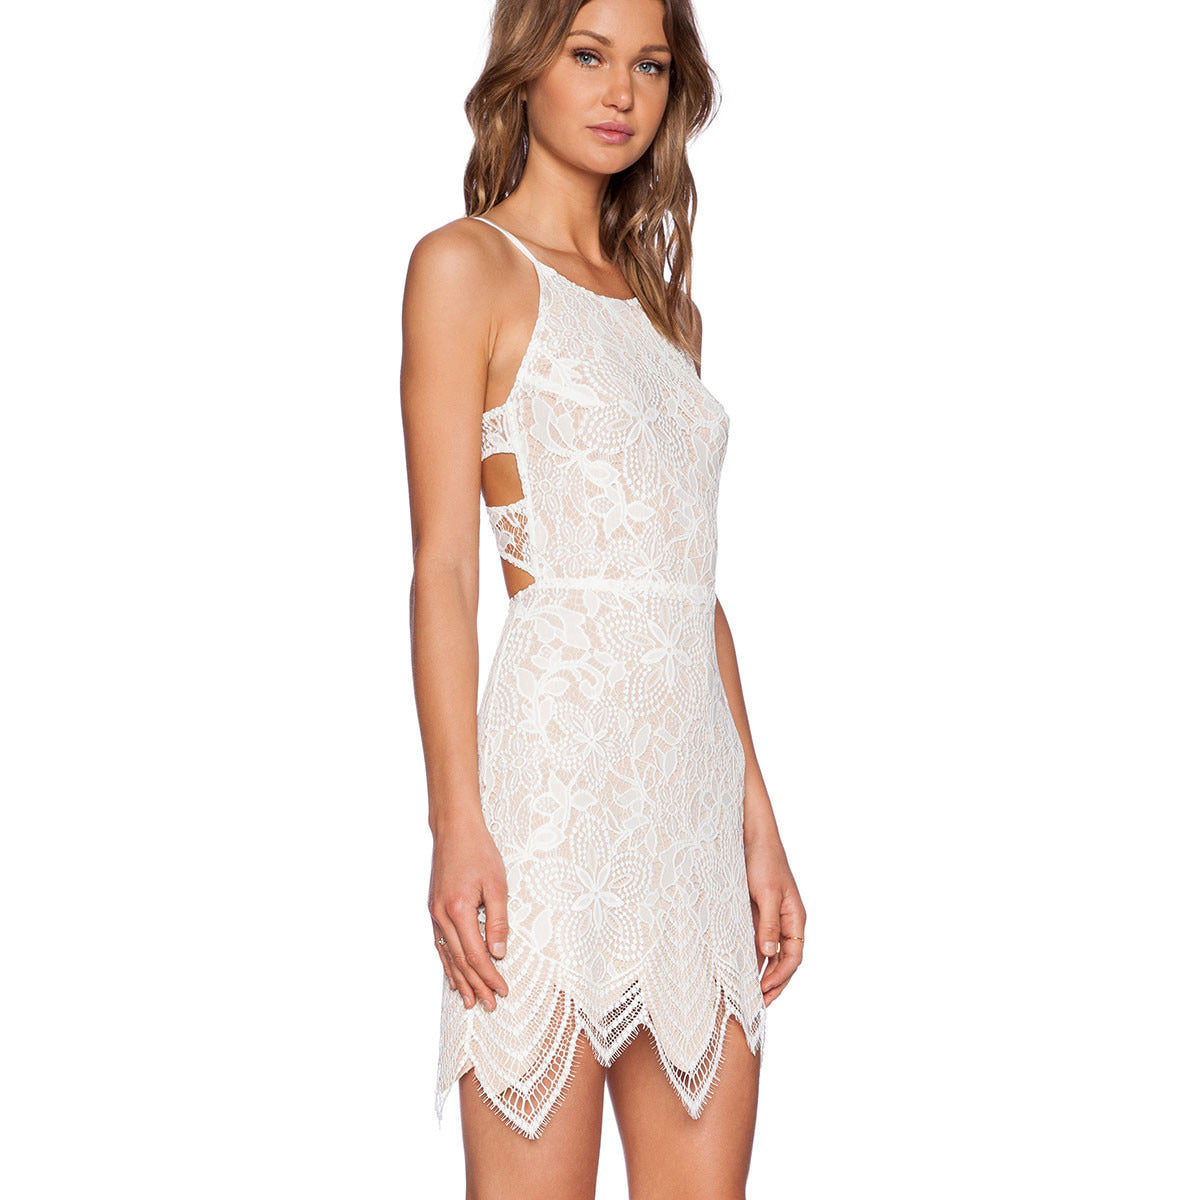 Off White Lace Backless Mini Dress LAVELIQ - LAVELIQ - 2